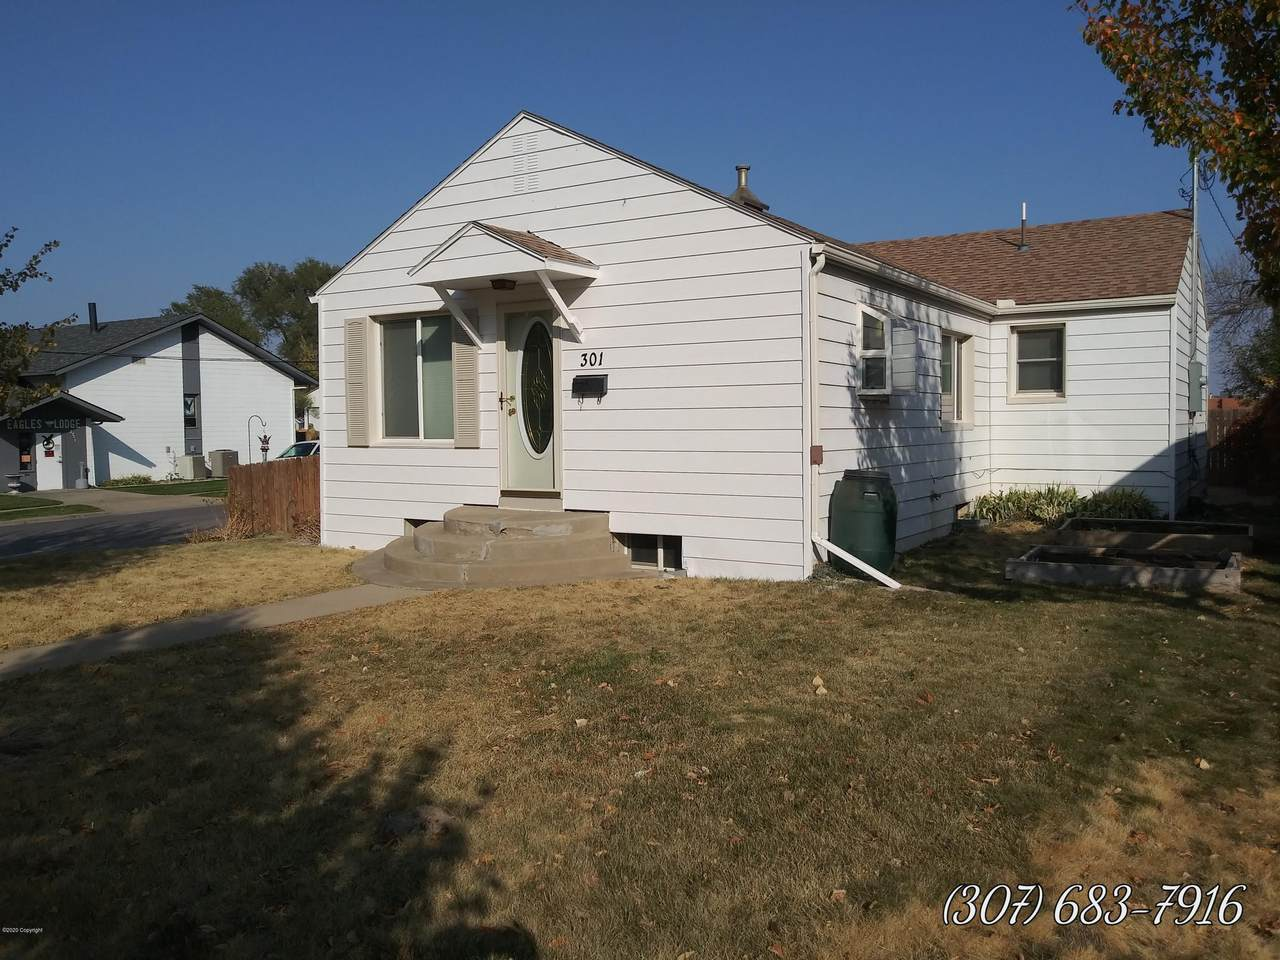 301 S Ross Ave - Photo 1